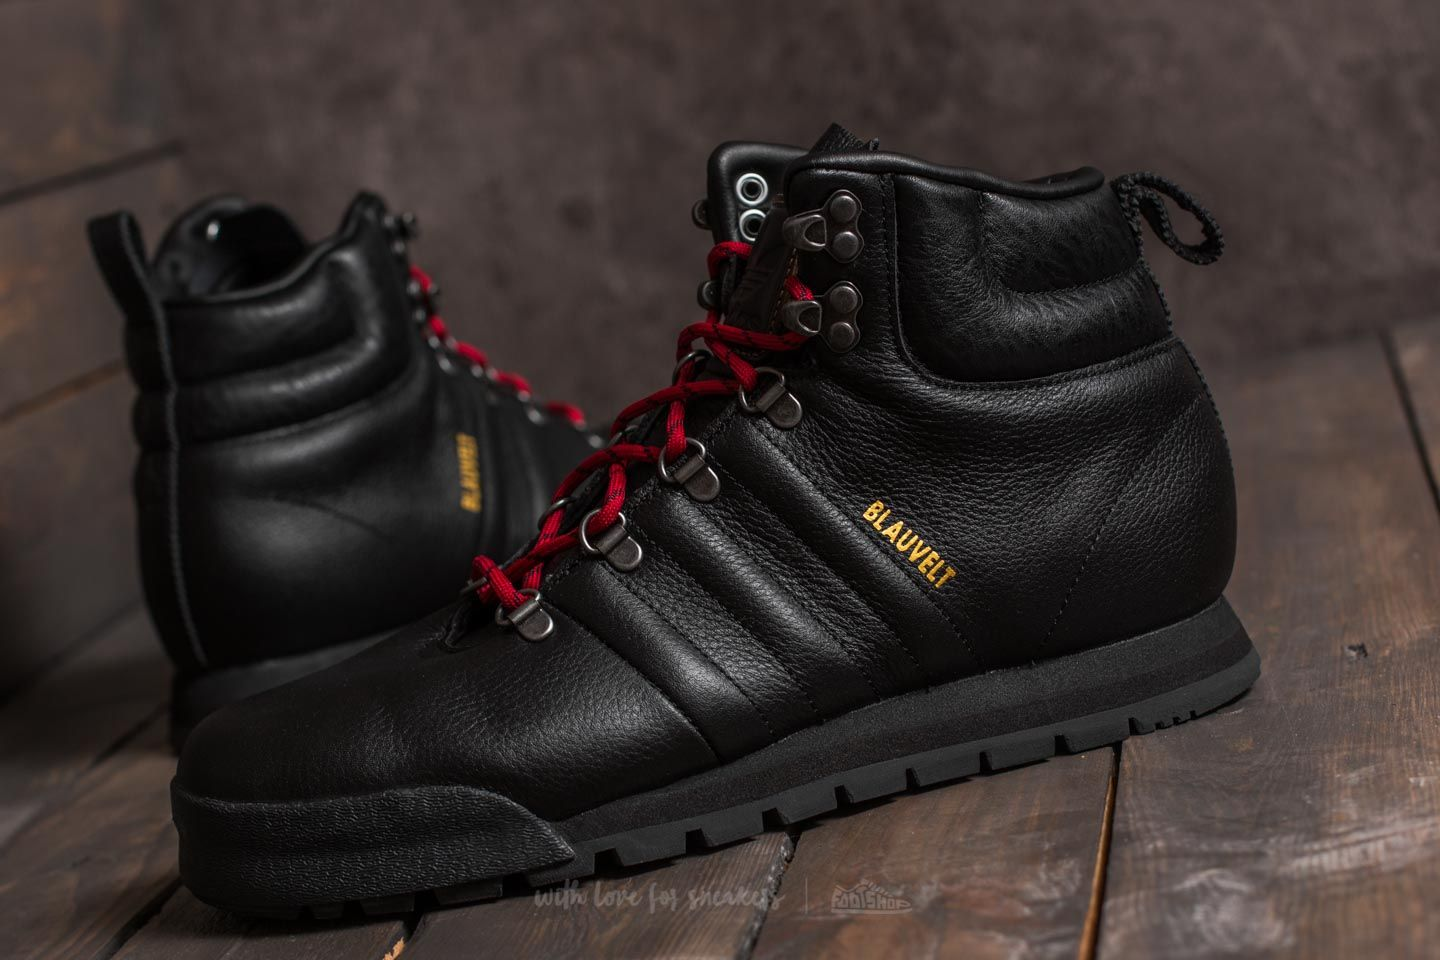 f7da7c03c86 adidas Jake Blauvelt Boot Black 1/ Black 1/ University Red | Footshop